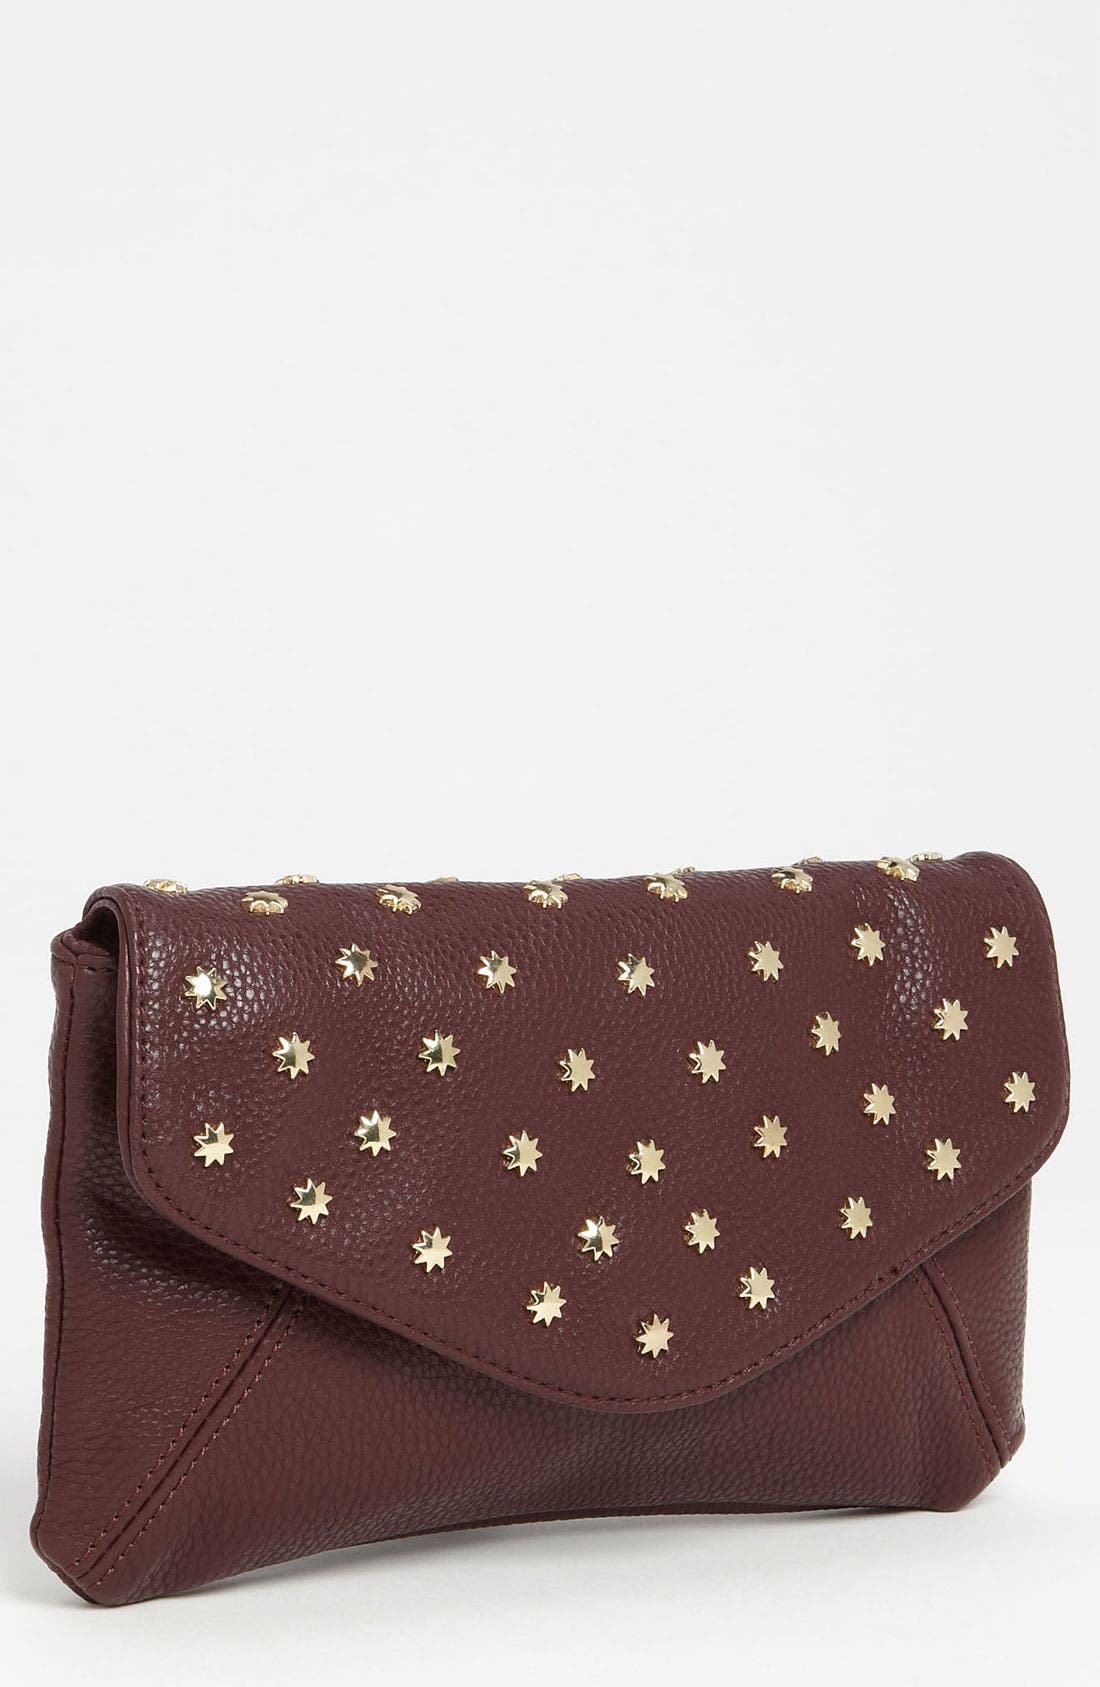 Alternate Image 1 Selected - Deux Lux 'Star Gazer' Clutch